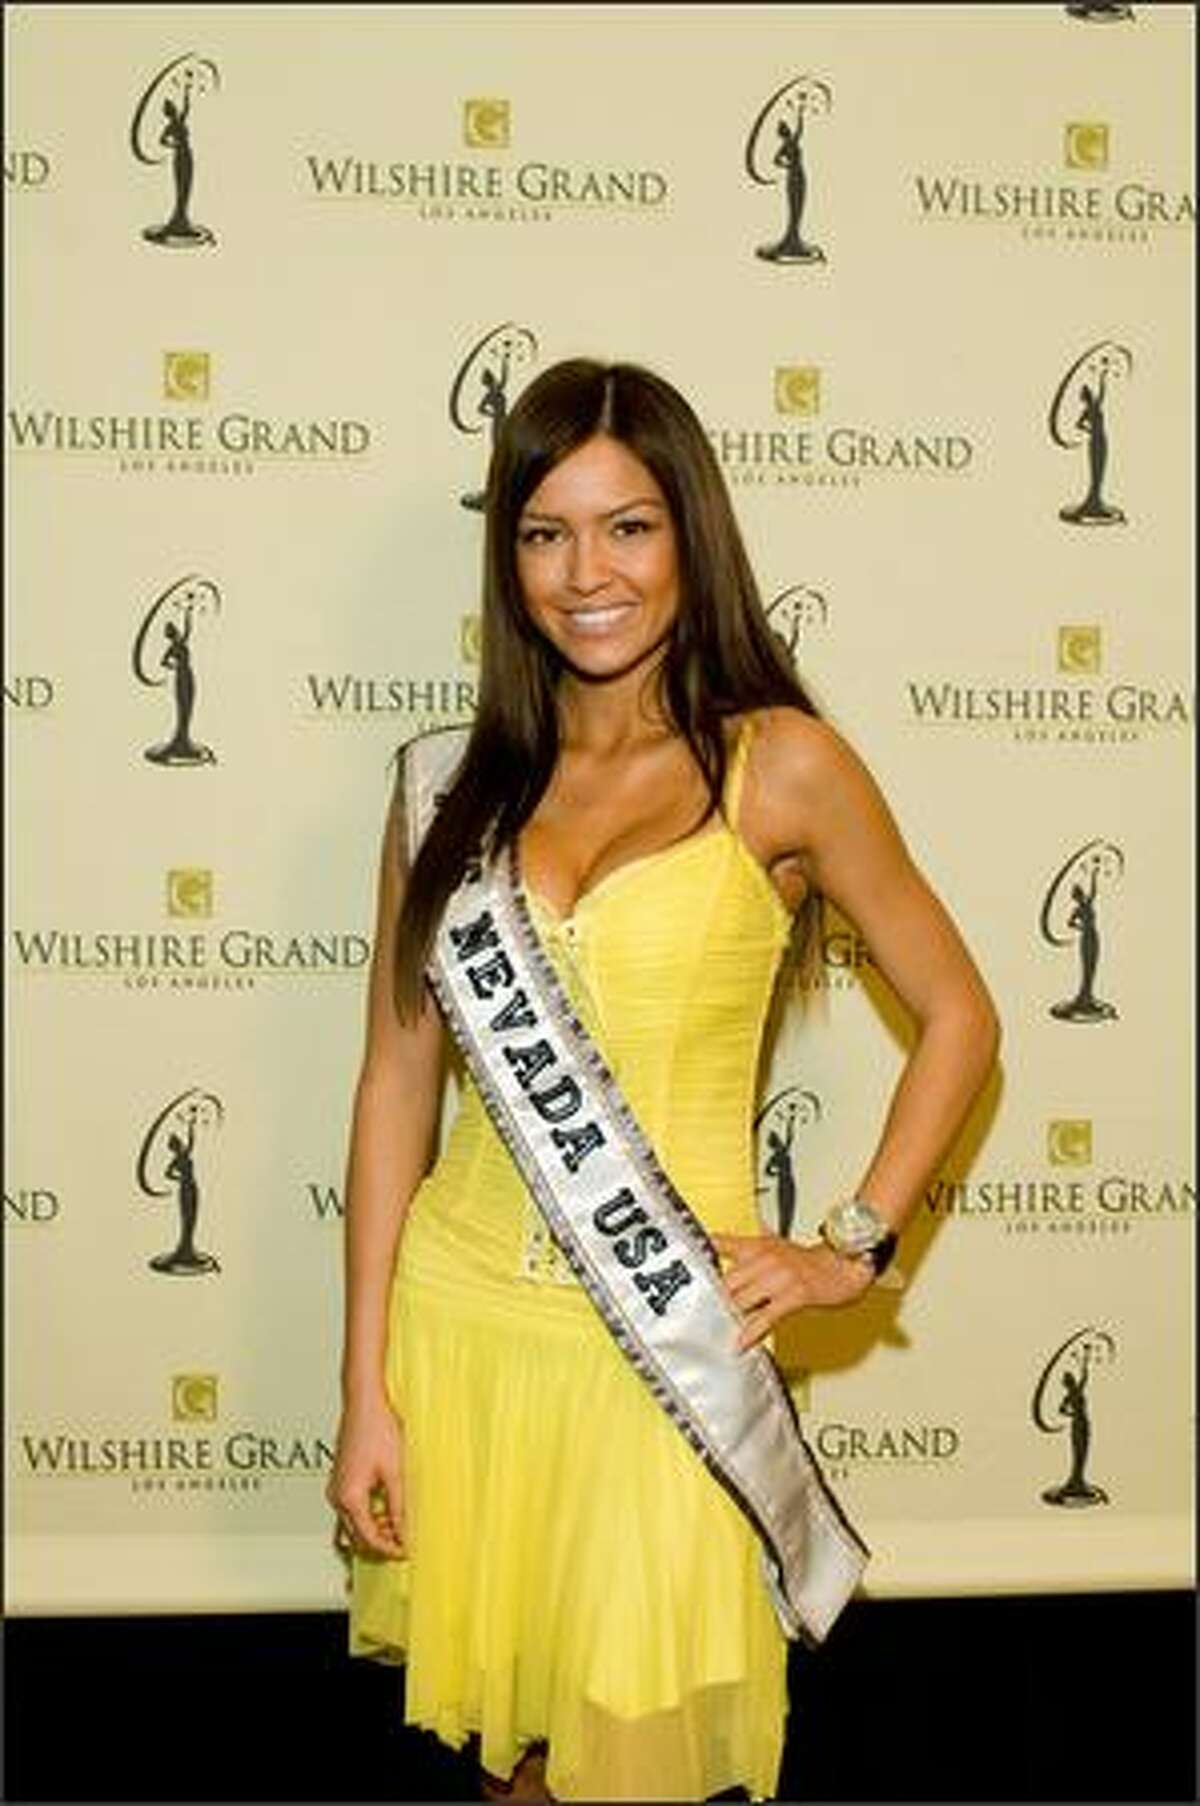 Helen Salas, Miss Nevada USA 2007, poses at the Wilshire Grand Hotel in Los Angeles on March 8 before registration and fittings for the Miss USA 2007 competition.